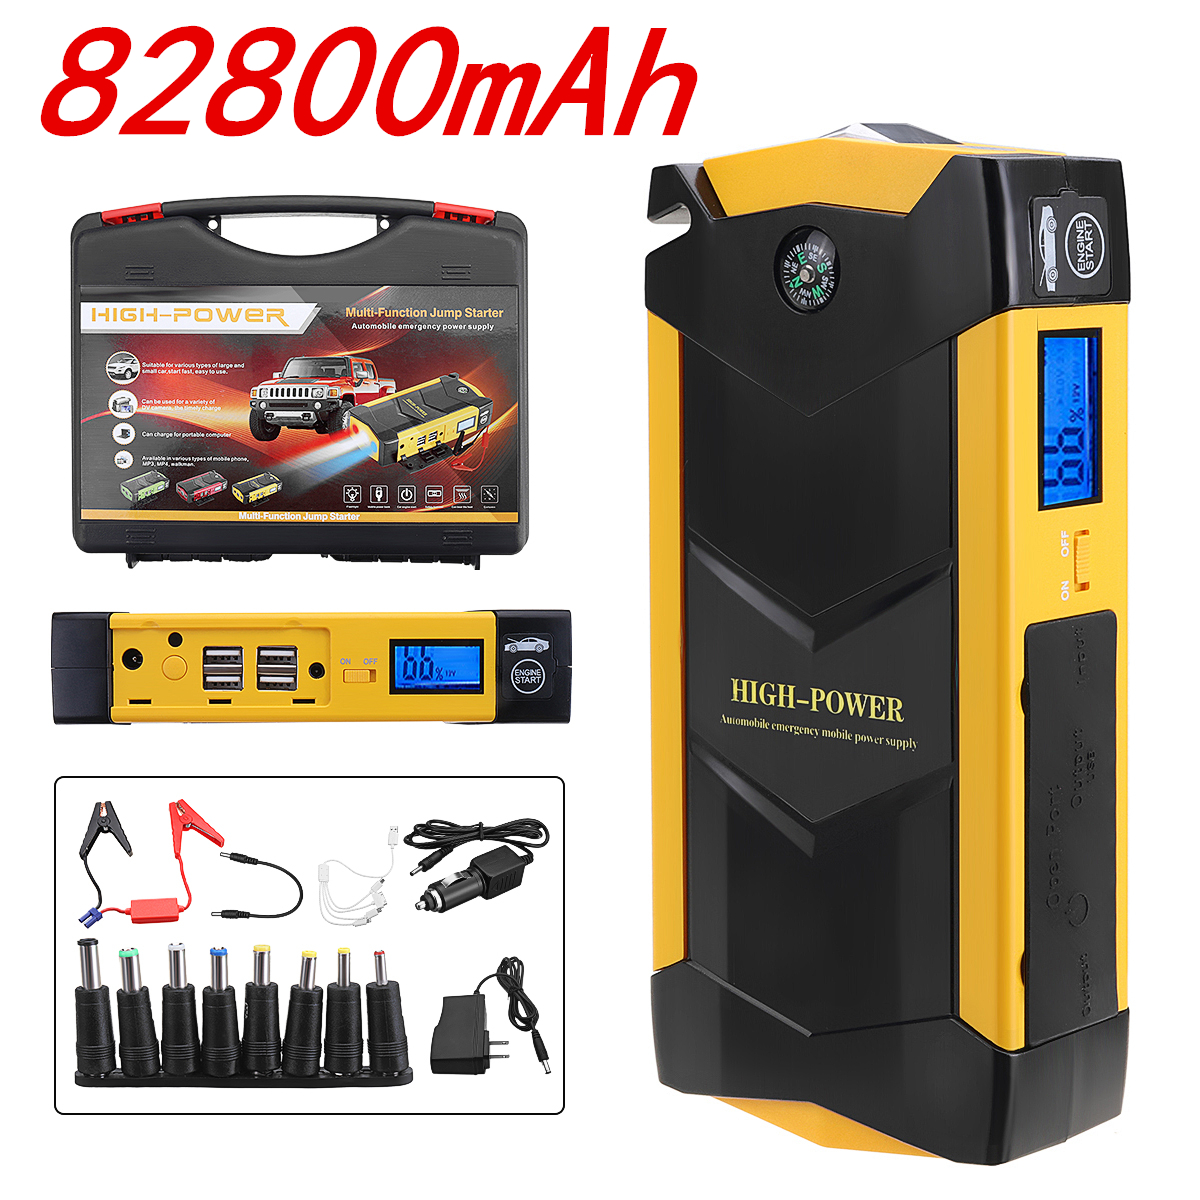 82800mAh 12V 4USB High Power <font><b>Car</b></font> <font><b>Battery</b></font> <font><b>Charger</b></font> Starting <font><b>Car</b></font> <font><b>Jump</b></font> <font><b>Starter</b></font> Booster Power Bank Kit For <font><b>Car</b></font> Auto Starting Device image